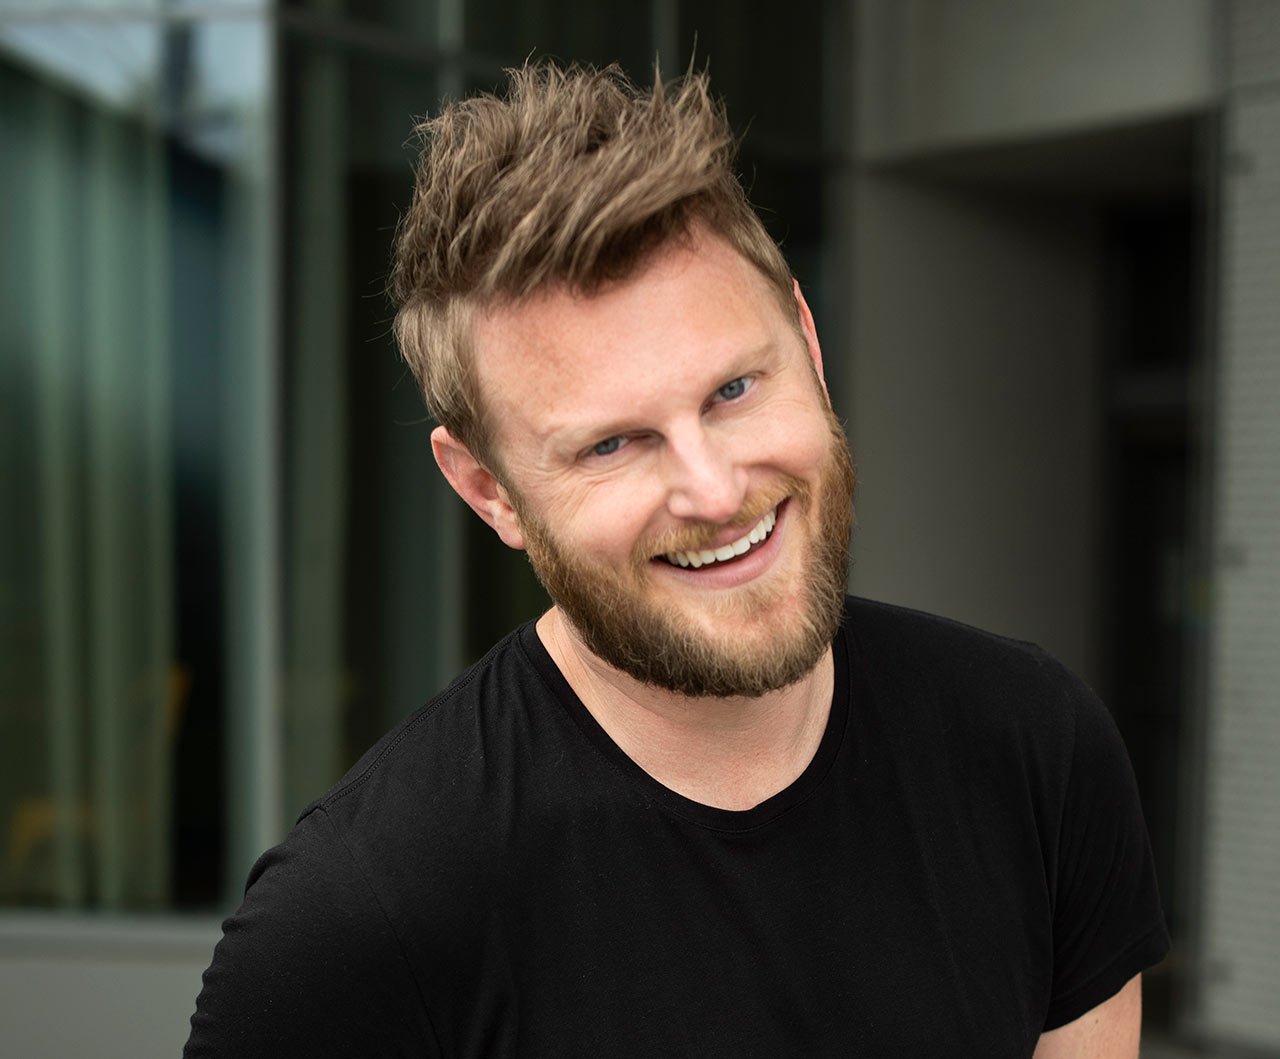 Listen to Clever Ep. 100: Designer + Queer Eye Star Bobby Berk